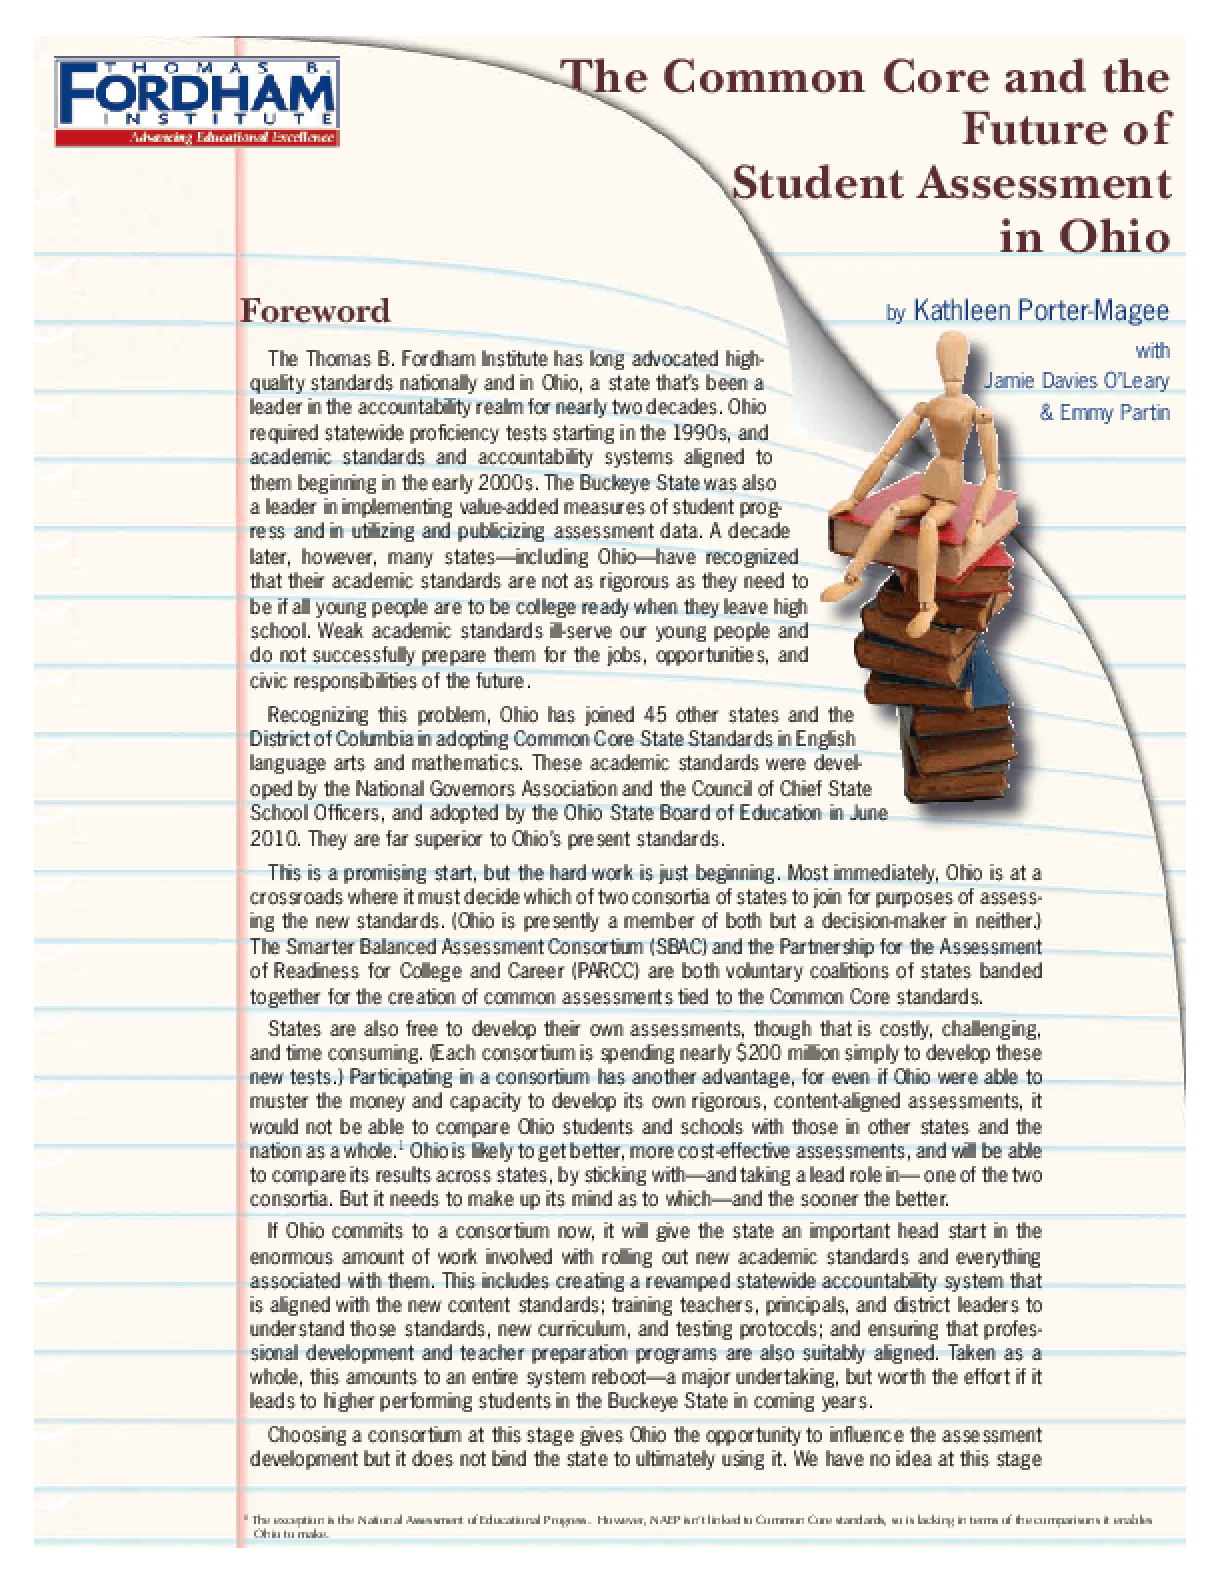 Common Core and the Future of Student Assessment in Ohio, The